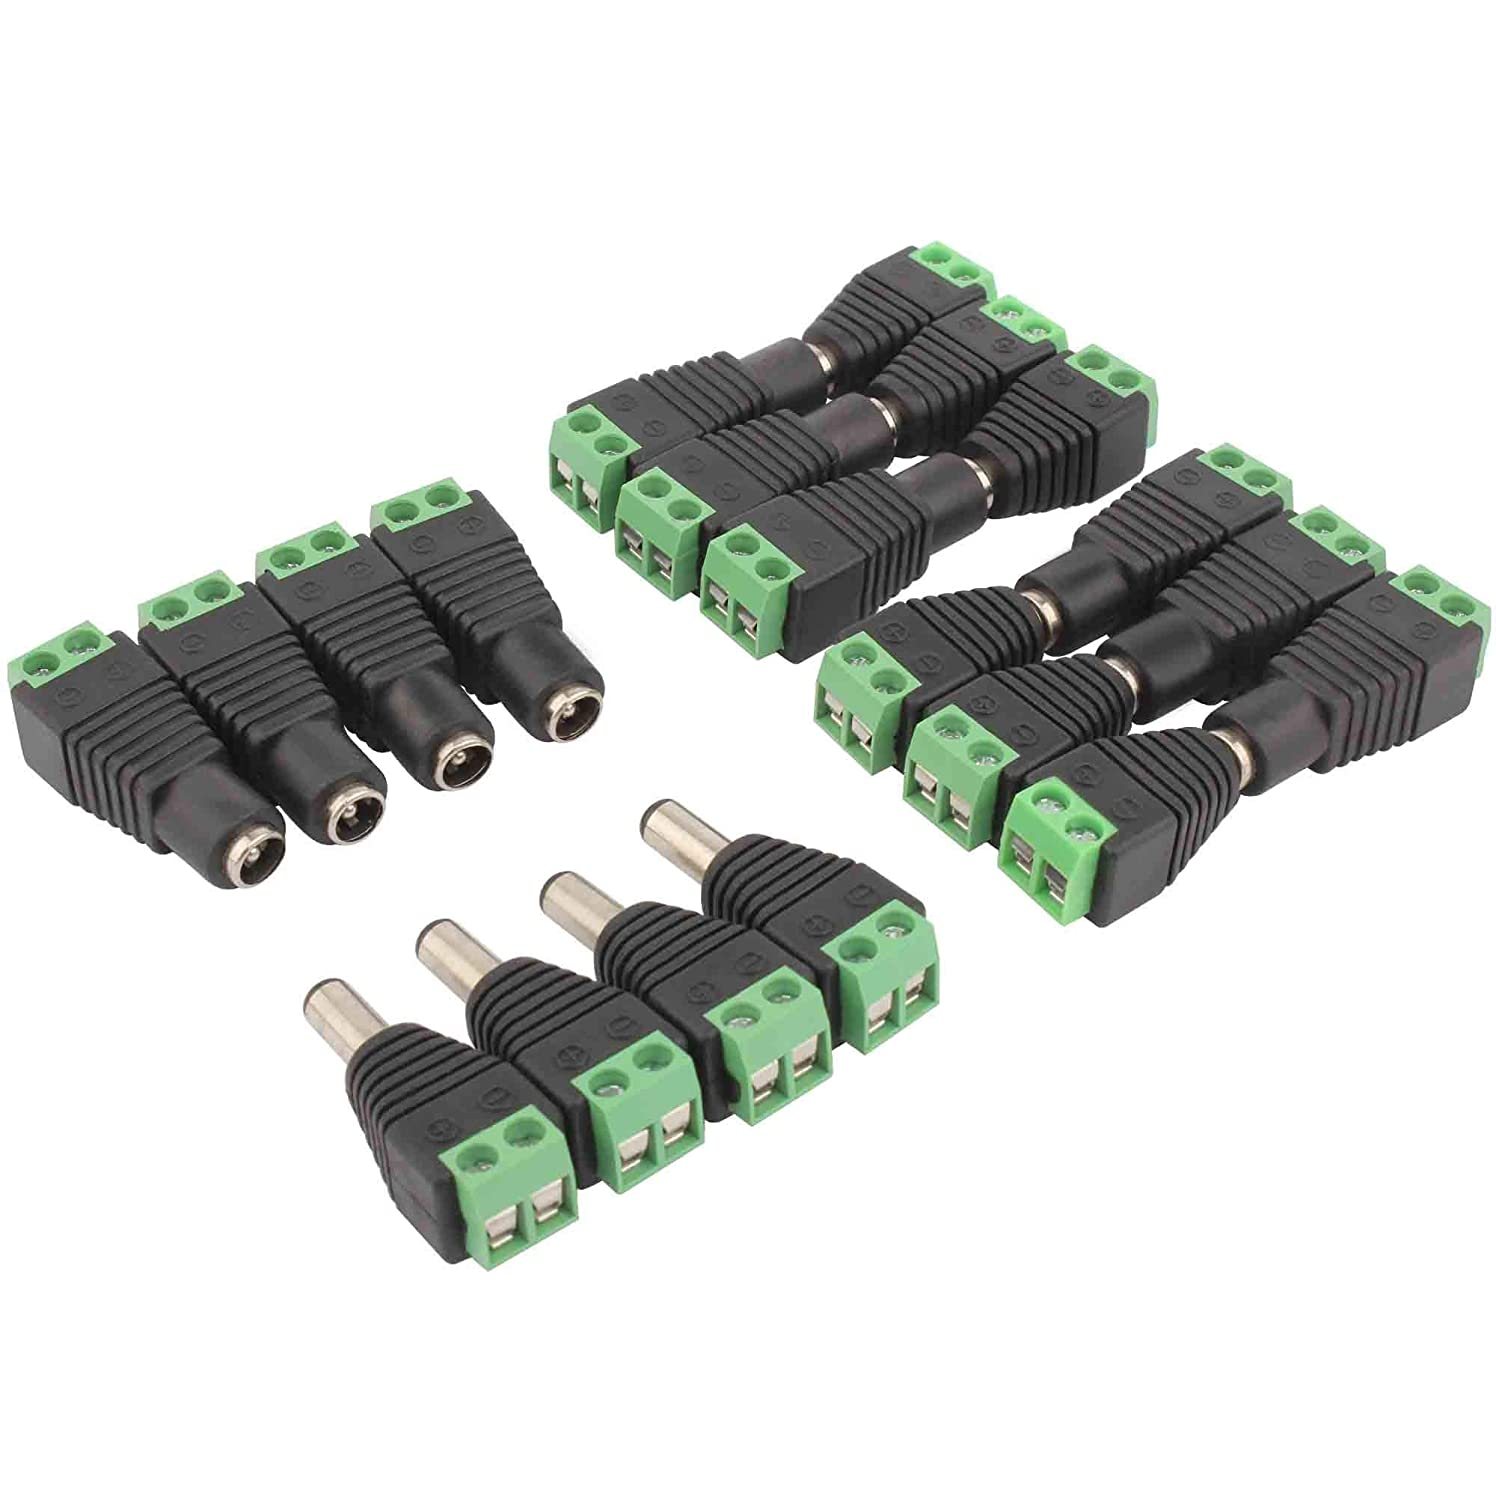 ACTOO DC Power Connector Jack Adapter for CCTV Security Camera LED Strip Male Female Plug 5.5mm x 2.1mm (Pack of 10 Pairs)